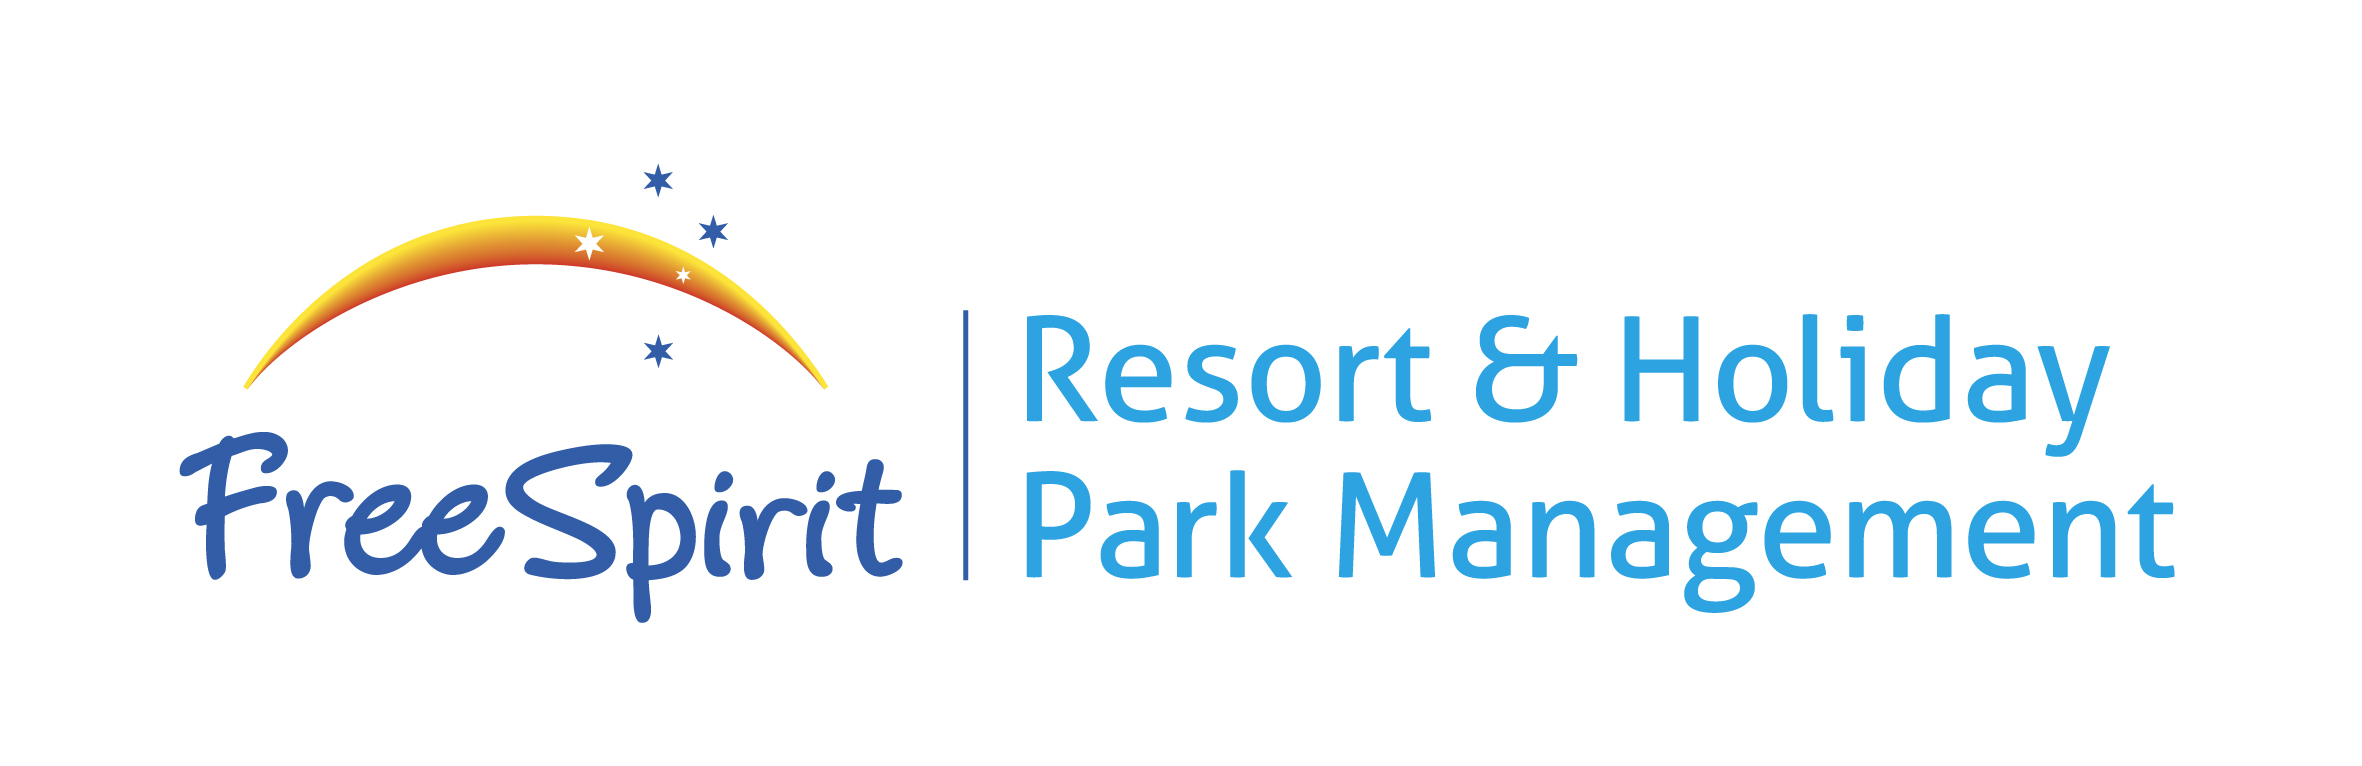 FreeSpirit Resort & Holiday Park Management